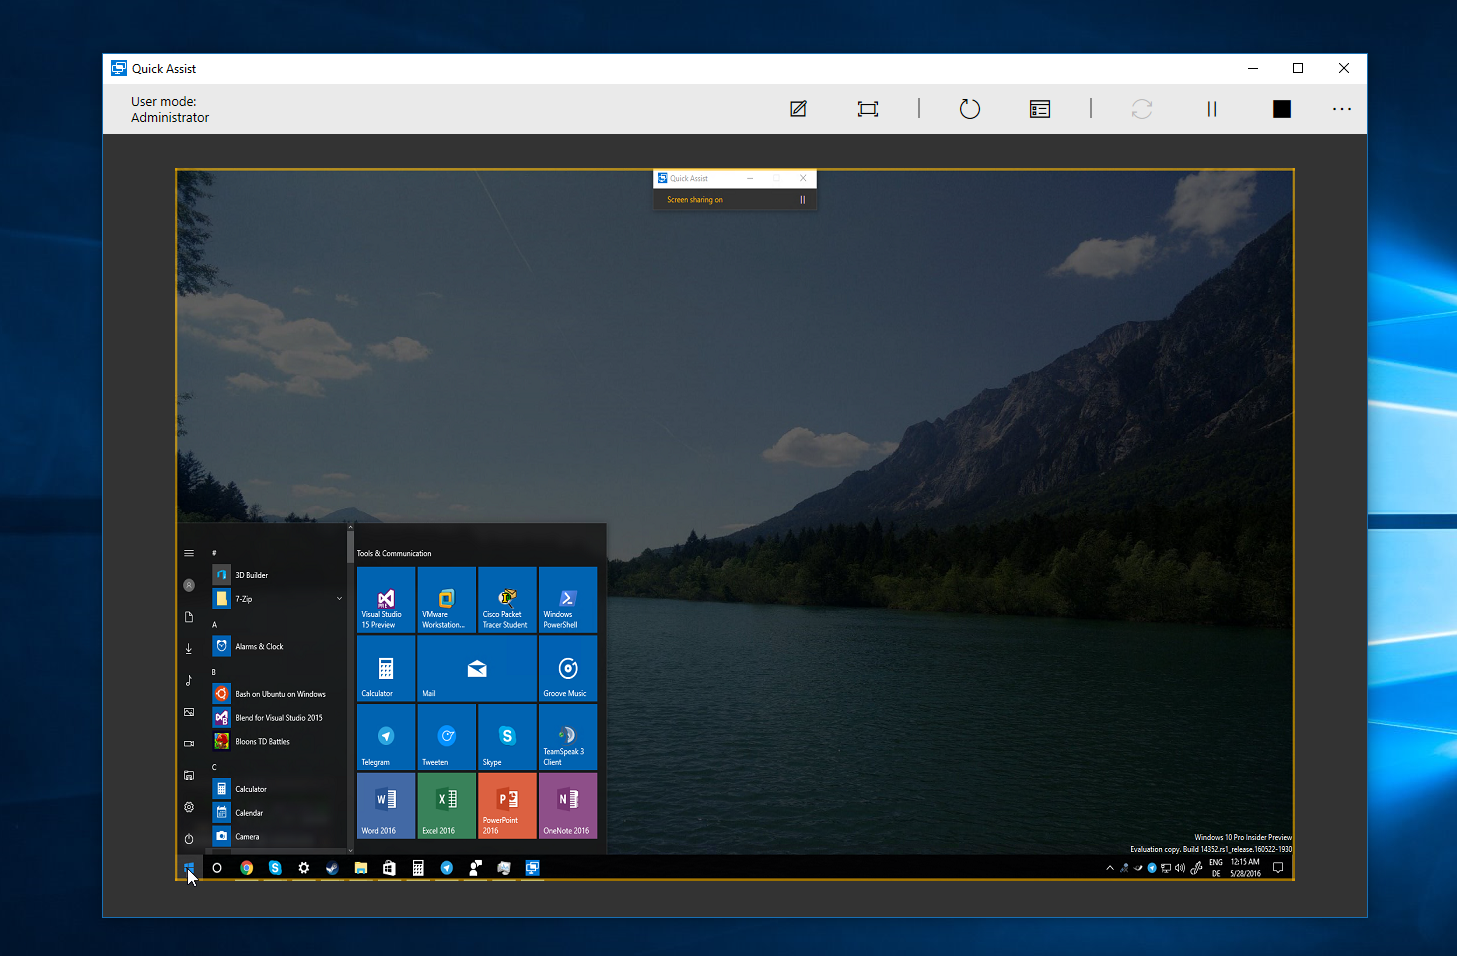 Microsoft demos new Quick Assist Remote Desktop feature in